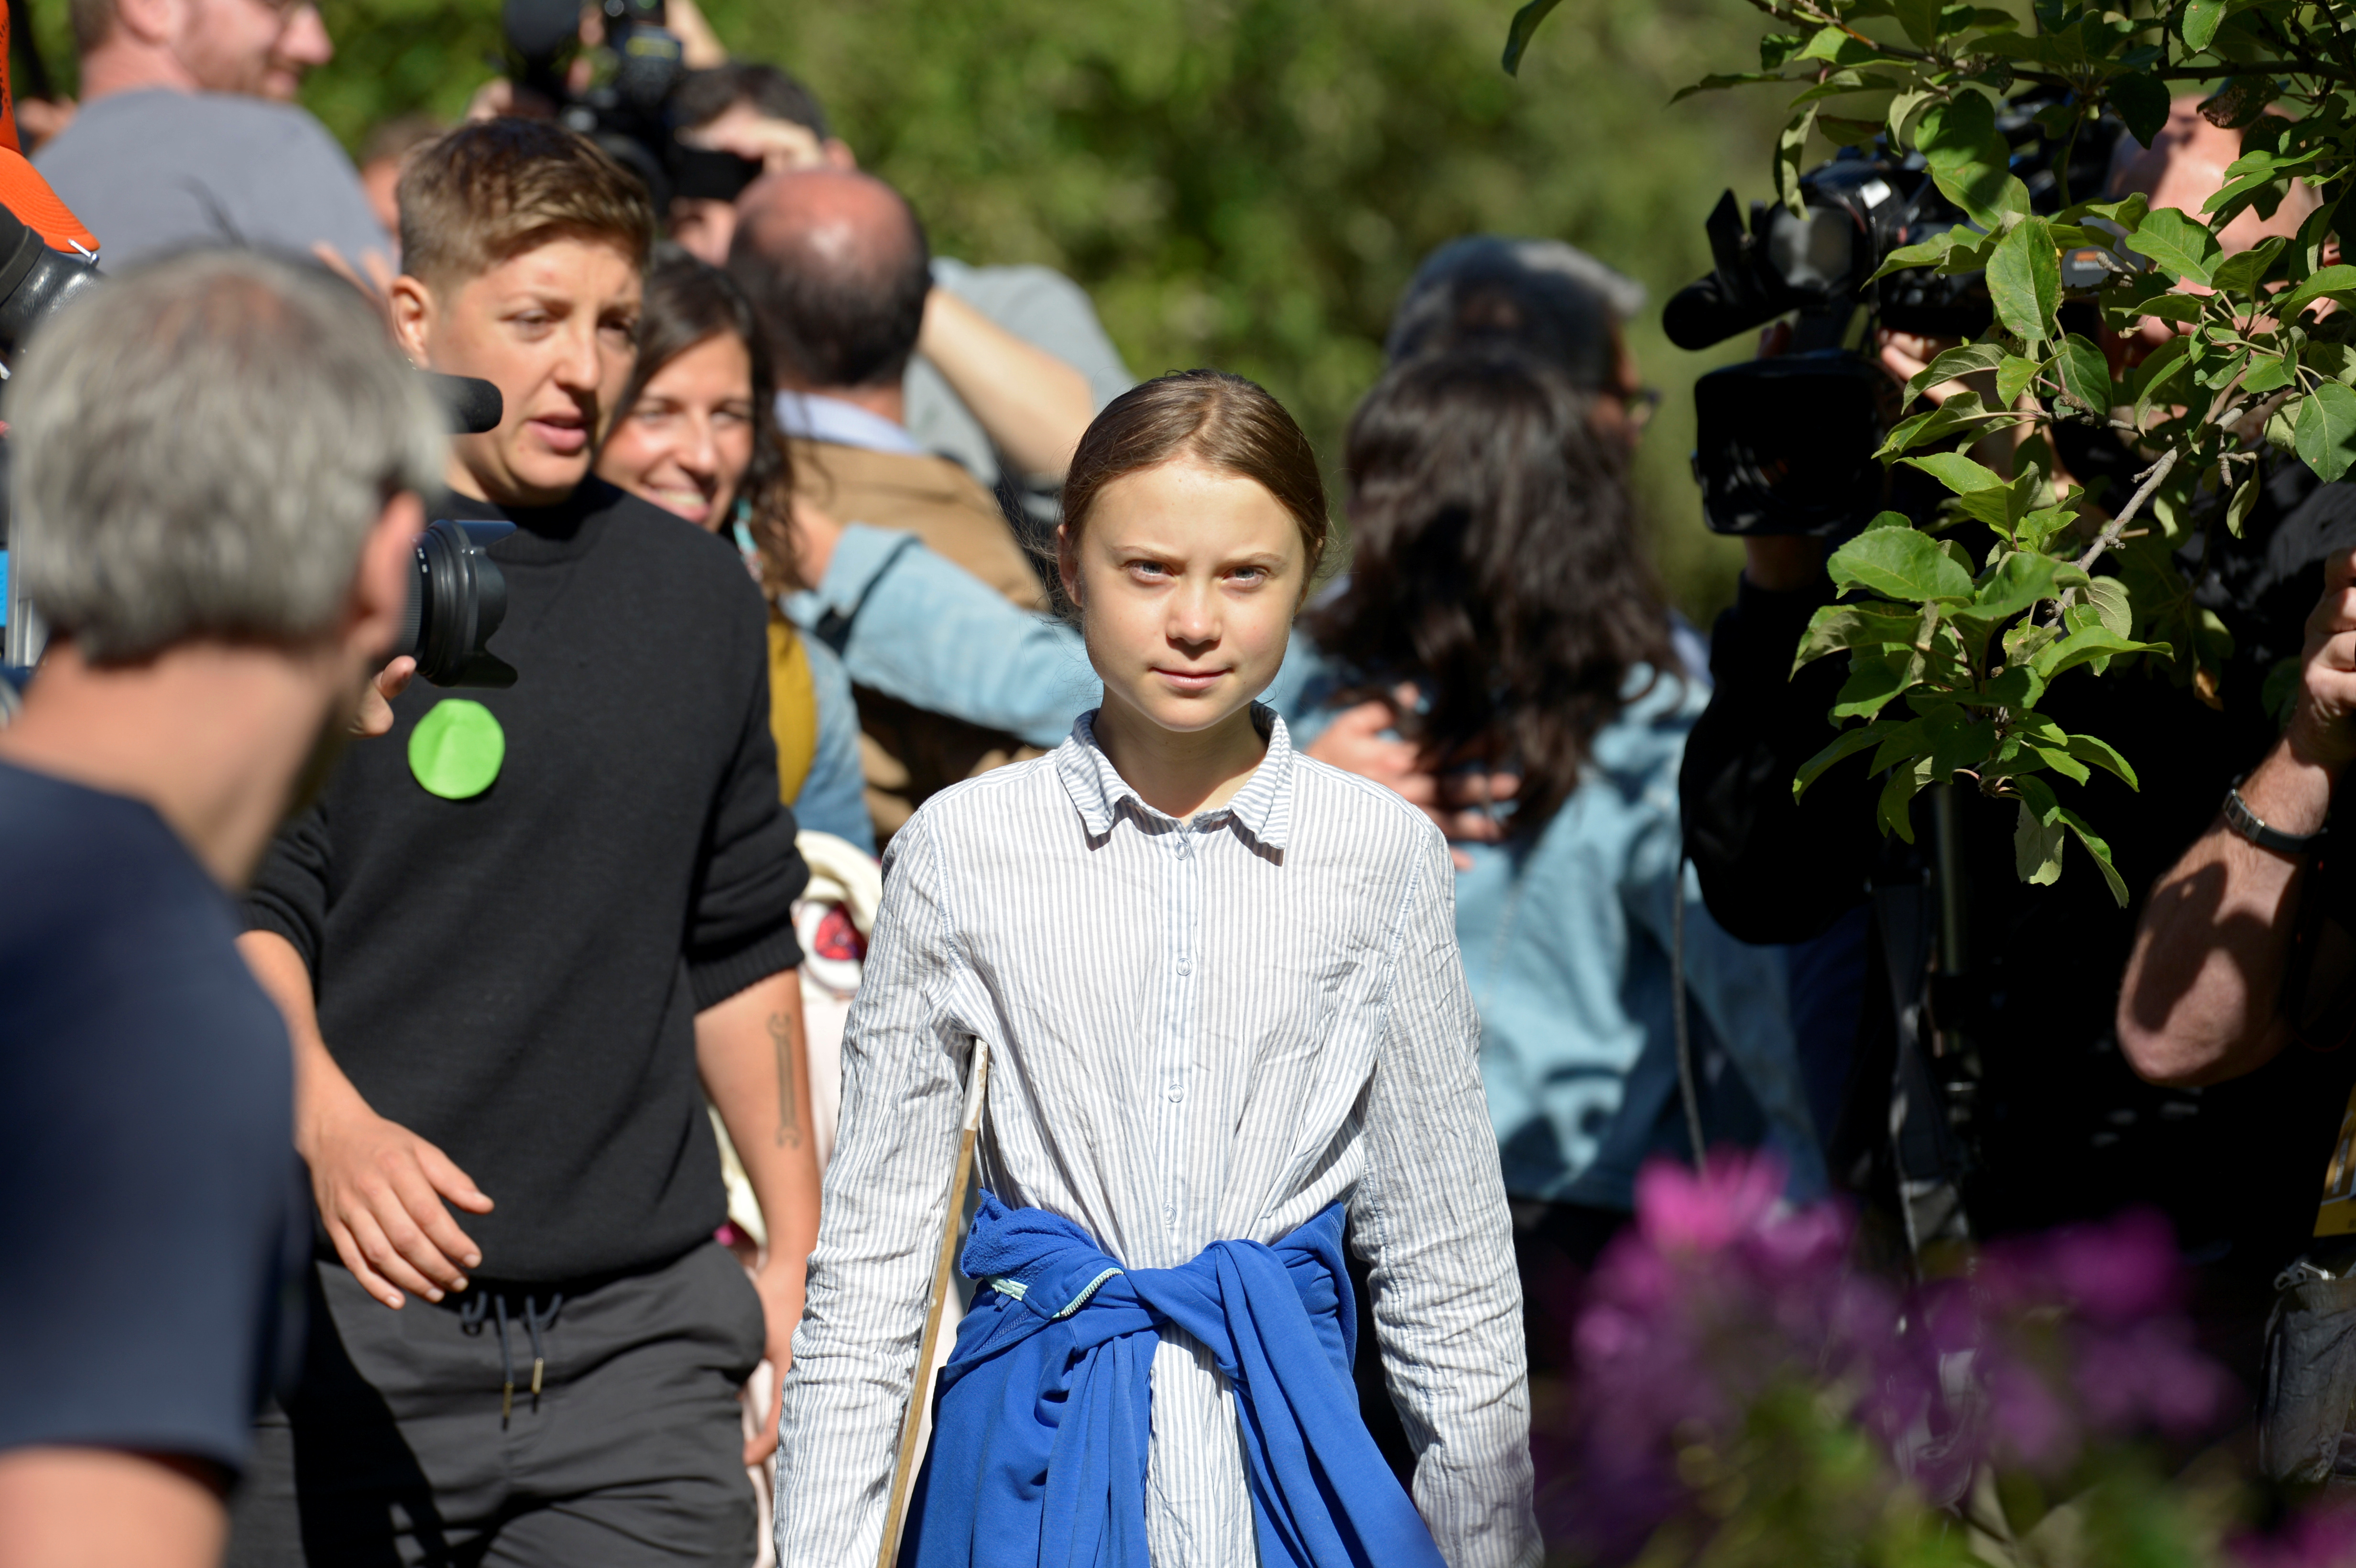 Climate change teen activist Greta Thunberg walks past media members before joining a climate strike march in Montreal, Quebec, Canada September 27, 2019. REUTERS/Andrej Ivanov